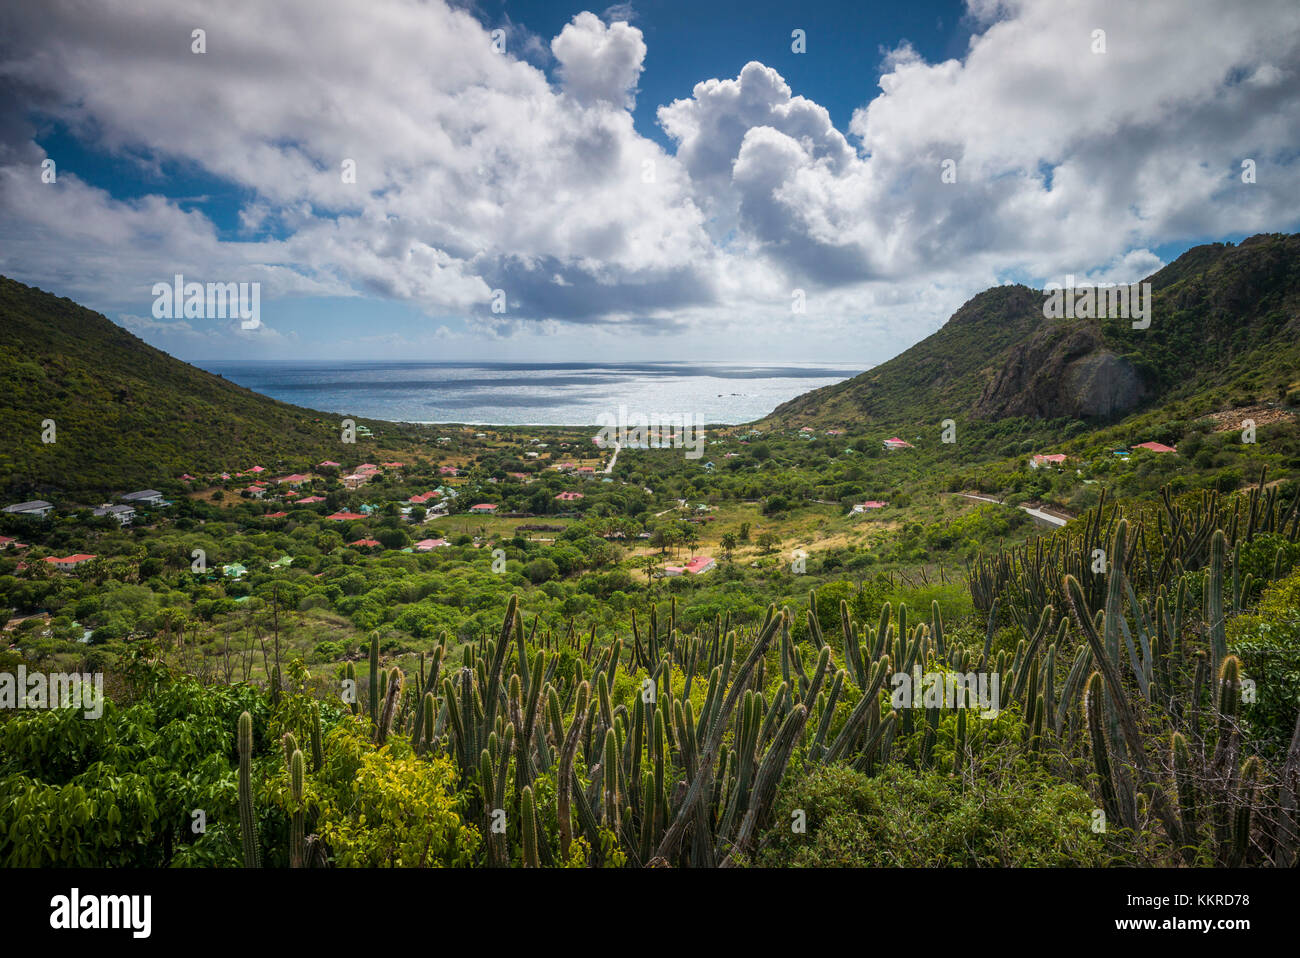 French West Indies, St-Barthelemy, Grand Fond, elevated landscape - Stock Image